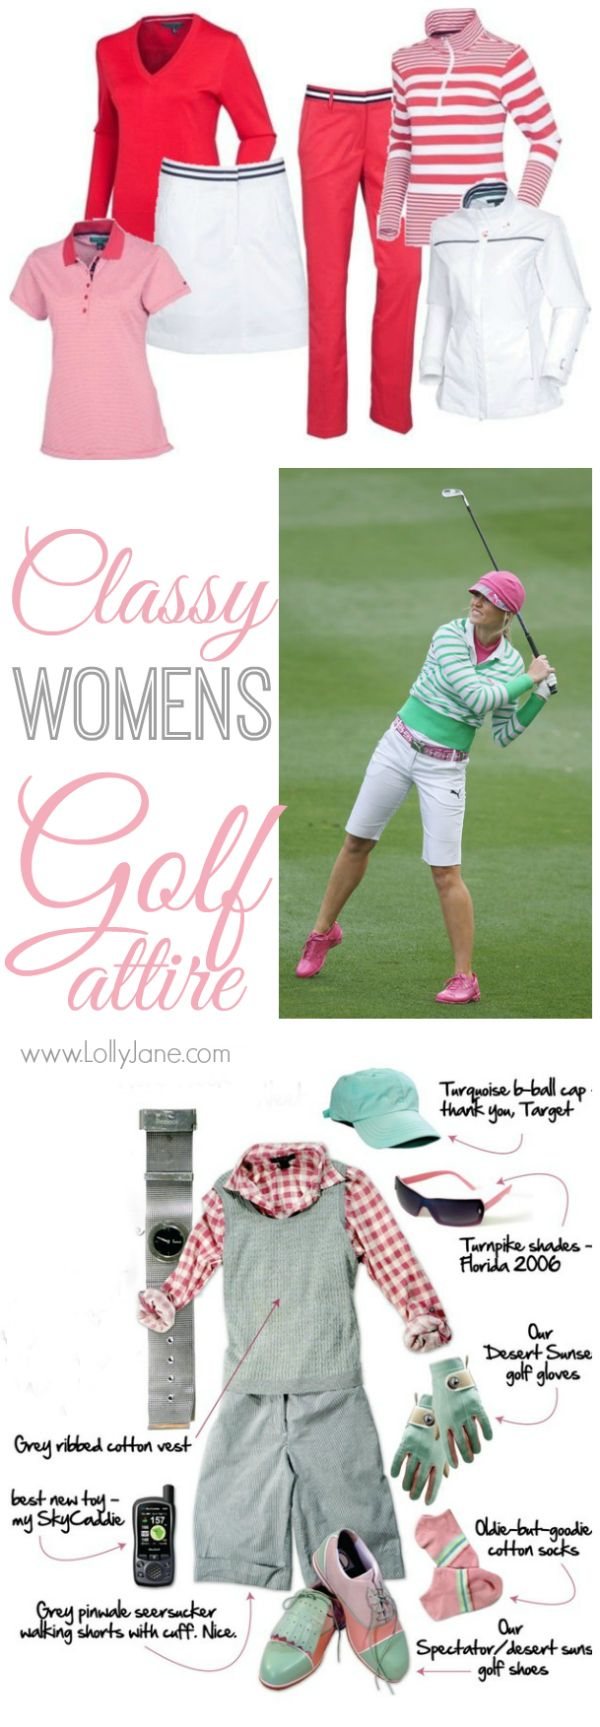 Classy Womens Golf Attire |lollyjane.com I'm not a golfer right now but the clothes are cute!